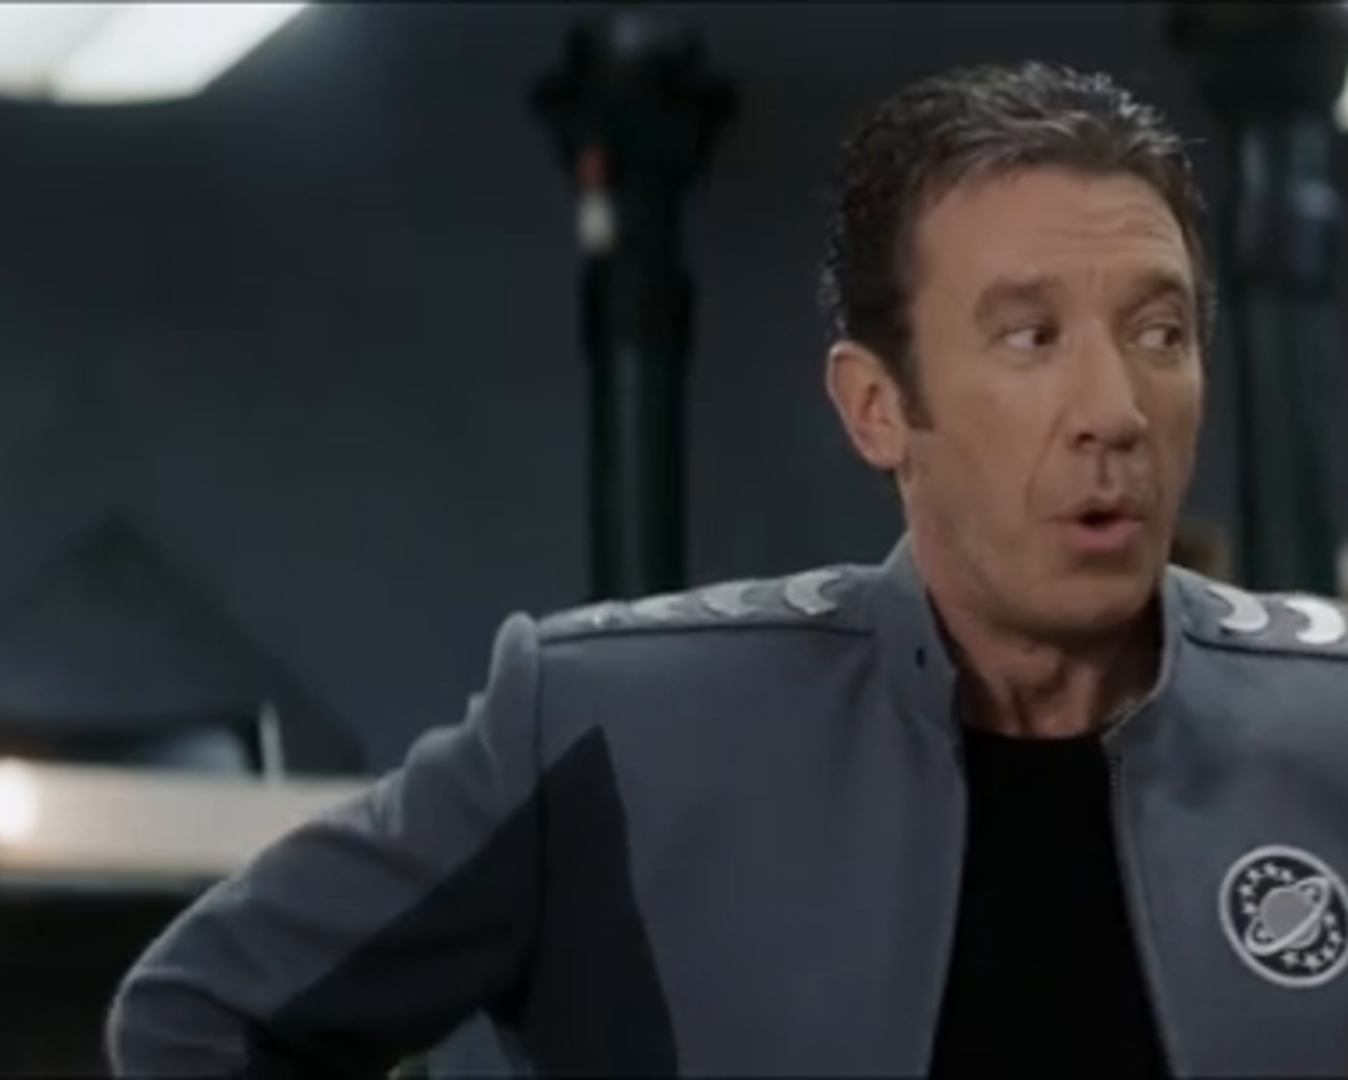 g36 e1618998408889 30 Spacefaring Facts About Hilarious Sci-Fi Comedy Film Galaxy Quest